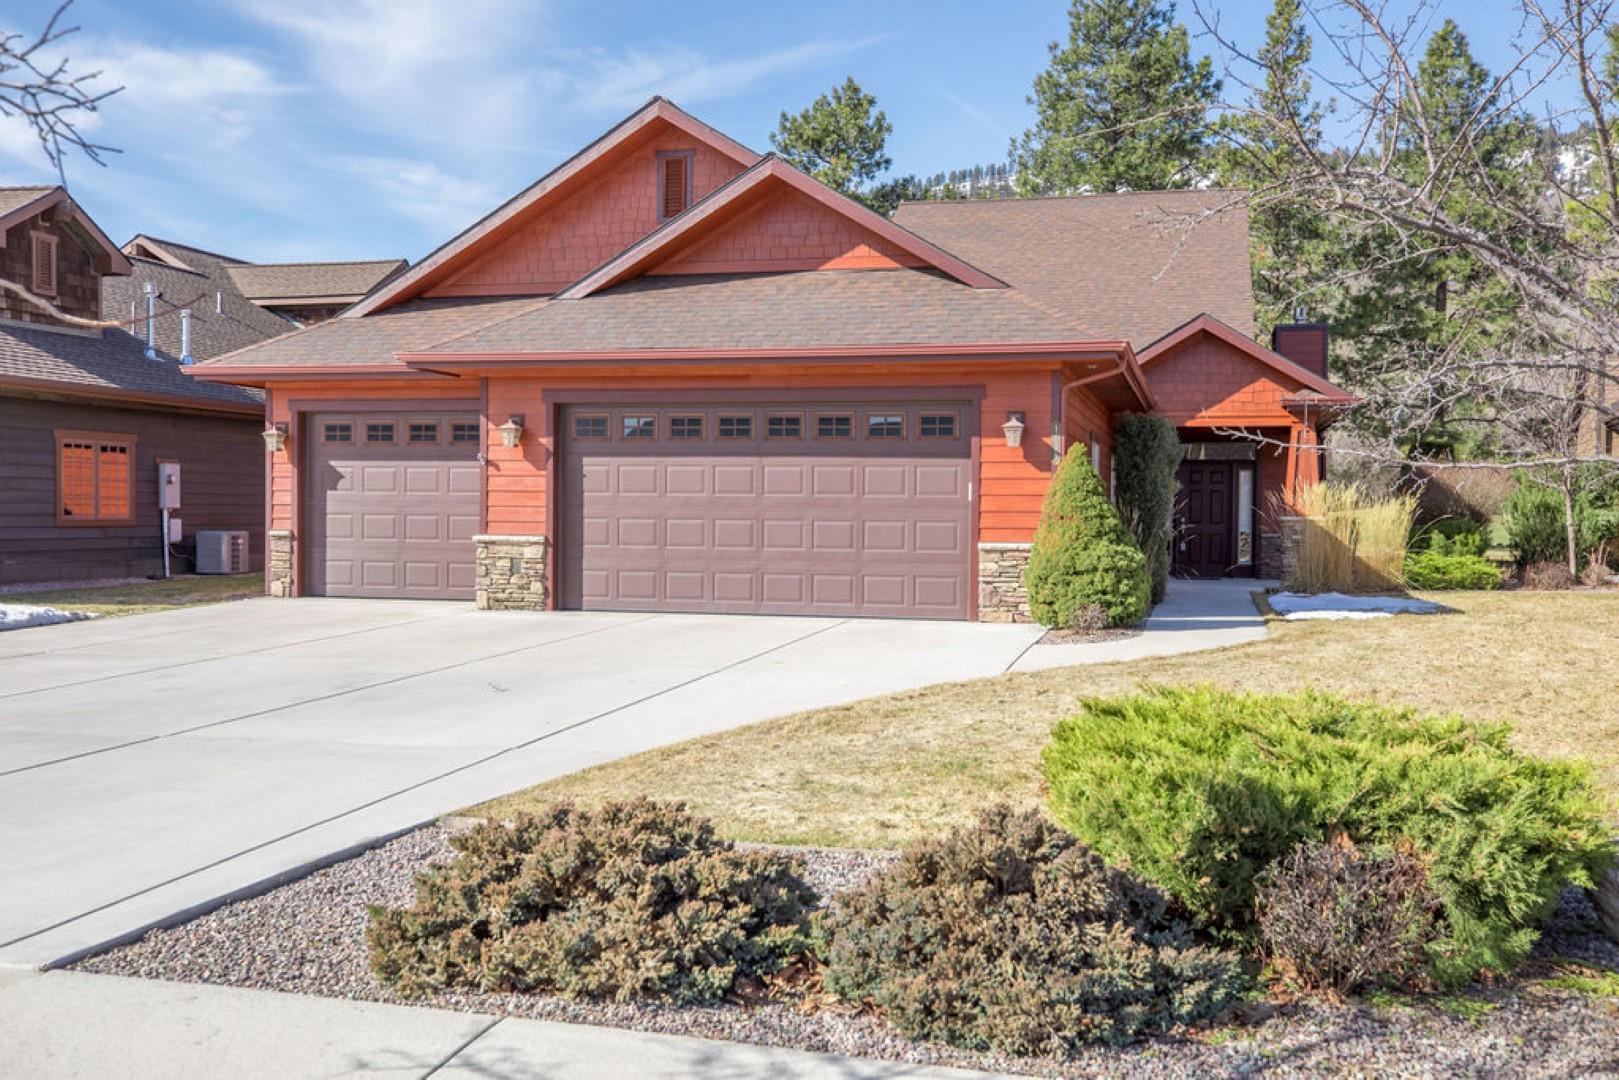 Real-Estate Photos - 1 1039 Anglers Bend